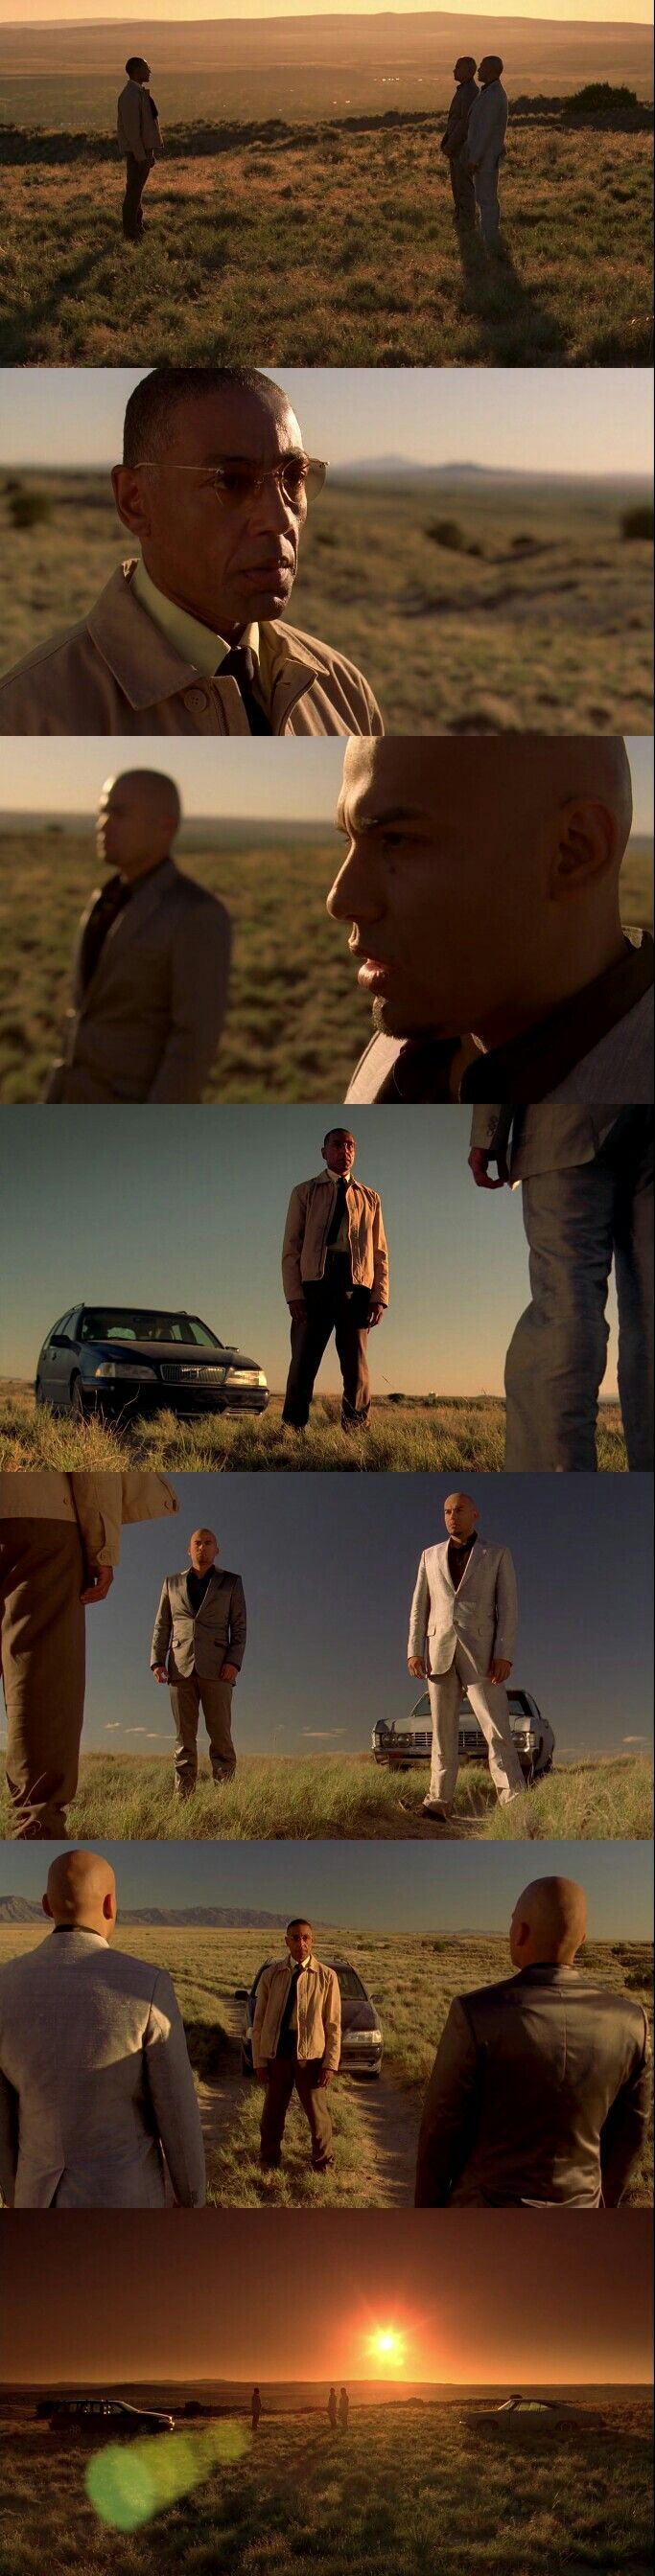 Breaking Bad Season 3 Episode 6 final scene: Gus talks Tuco's brothers to kill the real one who pull the trigger.